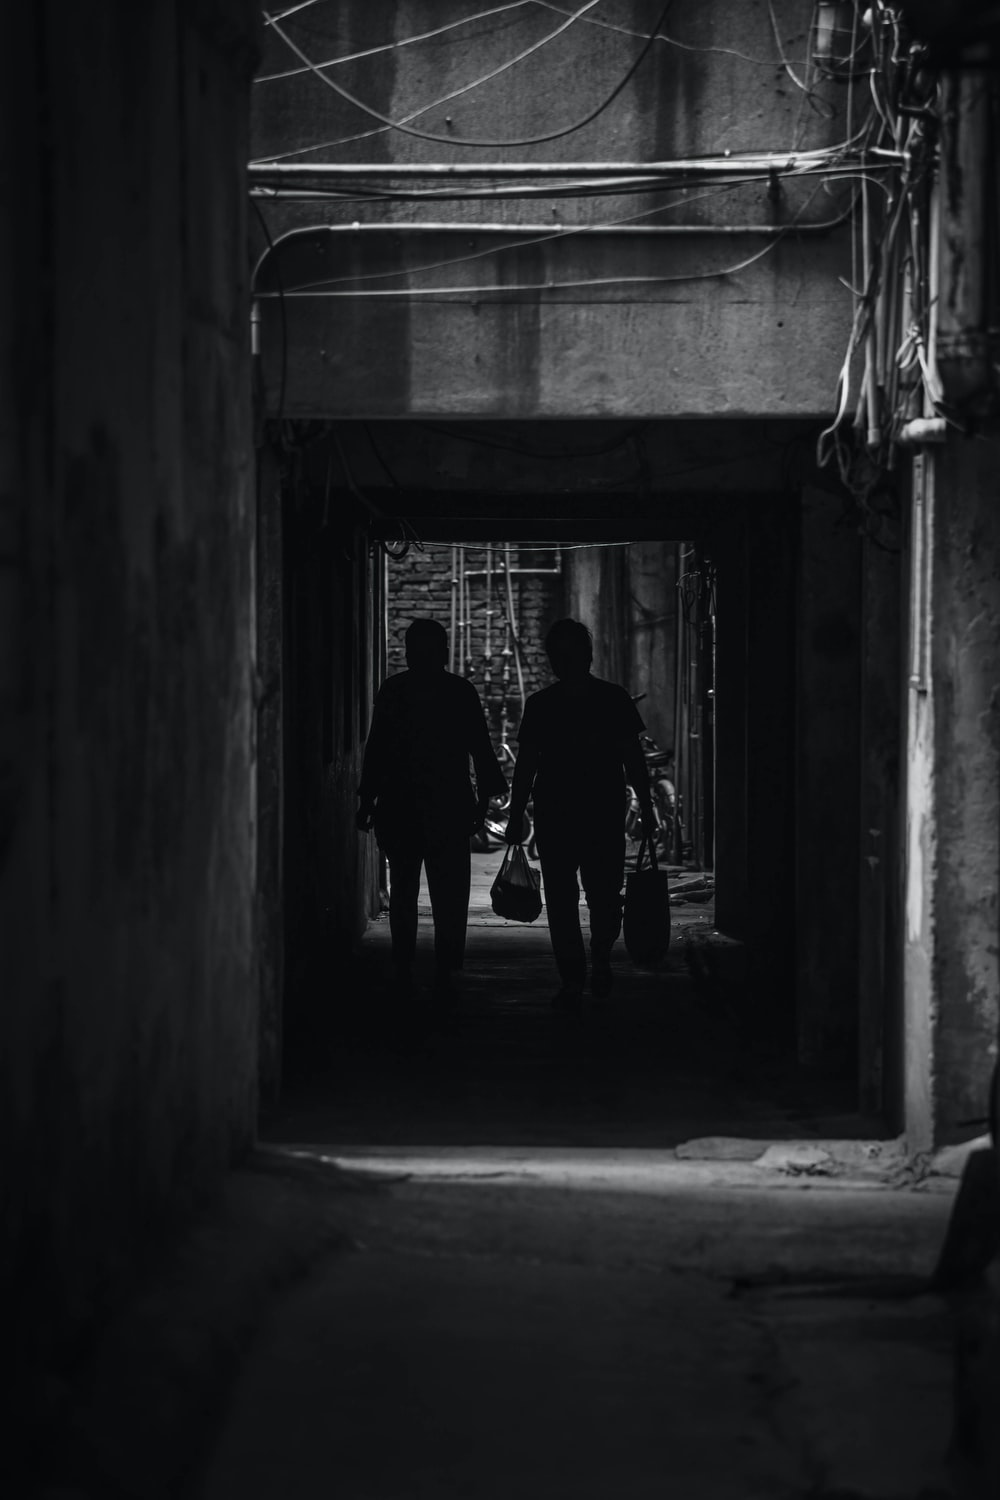 silhouette of man and woman walking on hallway